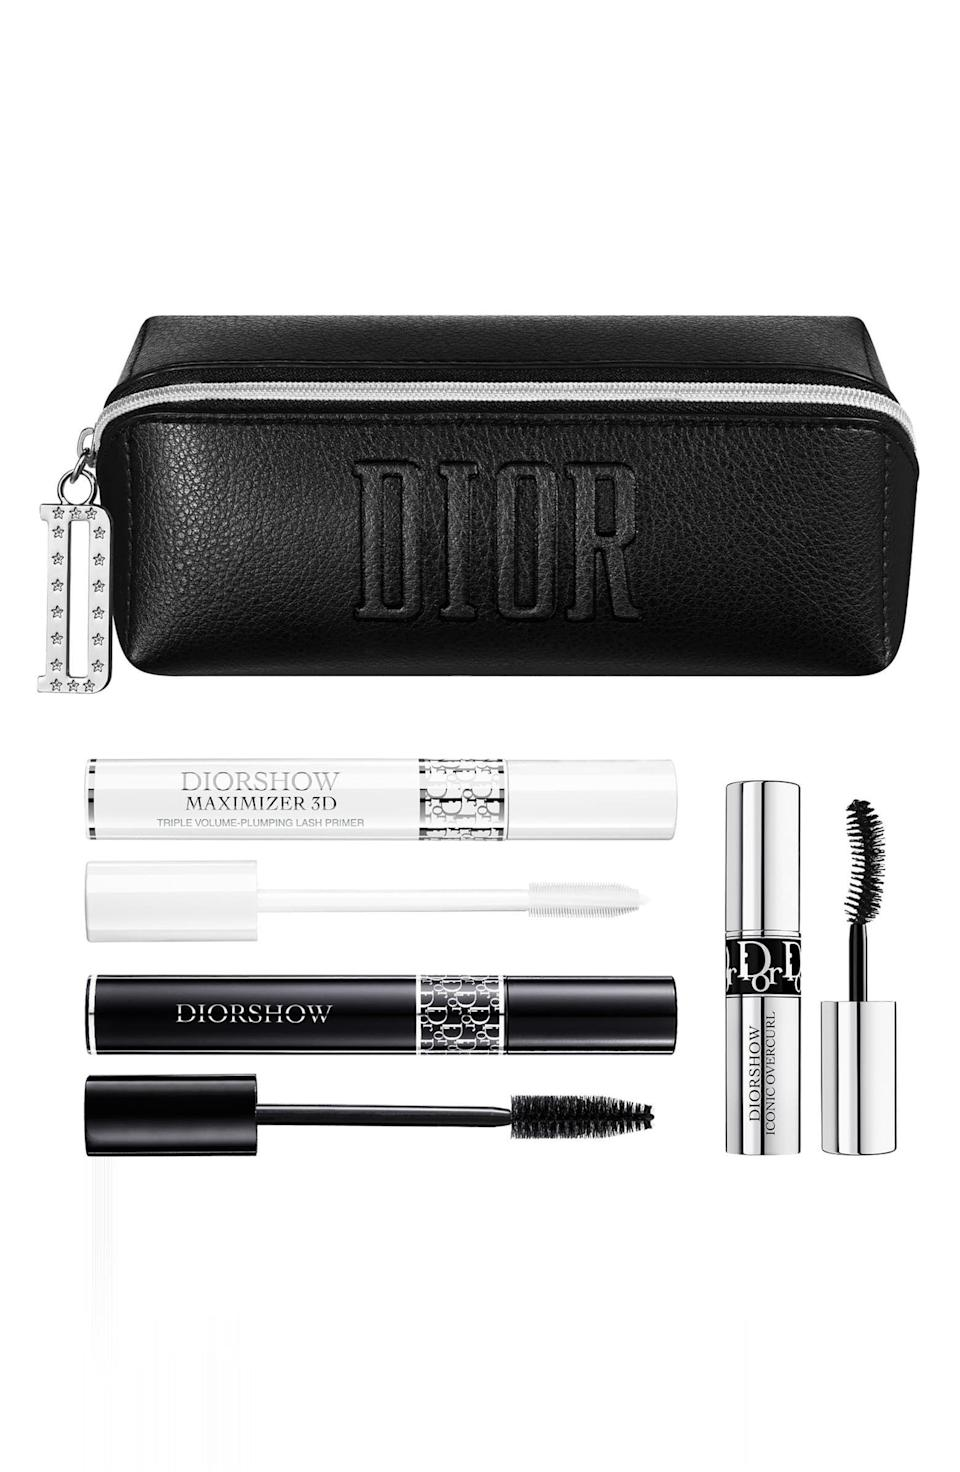 "<p><strong>DIOR</strong></p><p>nordstrom.com</p><p><a href=""https://go.redirectingat.com?id=74968X1596630&url=https%3A%2F%2Fwww.nordstrom.com%2Fs%2Fdior-diorshow-volumizing-mascara-set%2F5586860&sref=https%3A%2F%2Fwww.marieclaire.com%2Fbeauty%2Fg33595624%2Fnordstrom-anniversale-sale-beauty-products-2020%2F"" rel=""nofollow noopener"" target=""_blank"" data-ylk=""slk:SHOP IT"" class=""link rapid-noclick-resp"">SHOP IT </a></p><p>Nordstrom's Anniversary Sale is also packed with exclusive offers you can't get anywhere else. If you want to bring the Markle Sparkle to your beauty routine, this voluminizing mascara set was used on the Duchess of Sussex at her 2018 wedding. (Psst...you can buy <a href=""https://www.nordstrom.com/s/dior-maximizing-lip-care-set/5586864"" rel=""nofollow noopener"" target=""_blank"" data-ylk=""slk:Dior's lipstick kit"" class=""link rapid-noclick-resp"">Dior's lipstick kit</a> too, which was also used on the big day.) </p>"